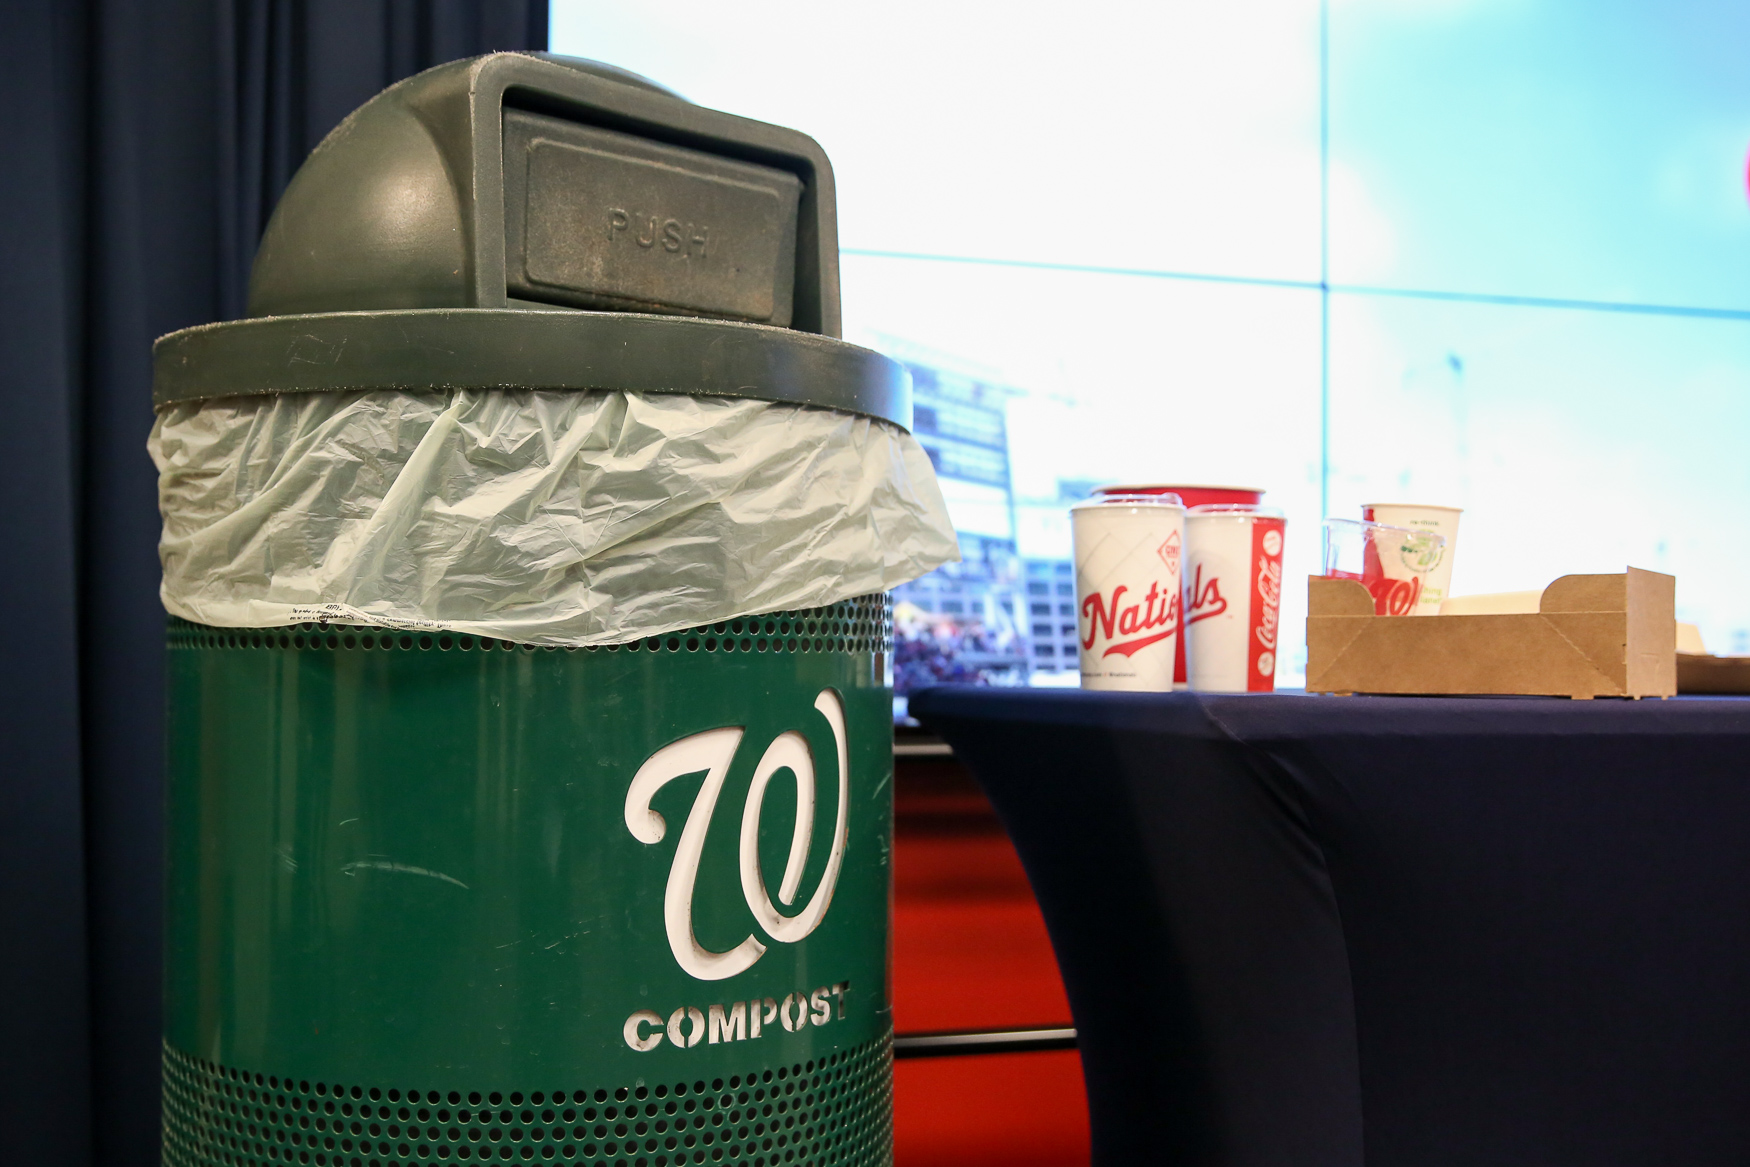 Nats Park will now be offering compost bins and eliminating single-use straws and promoting more eco-friendly food containers. (Amanda Andrade-Rhoades/DC Refined)